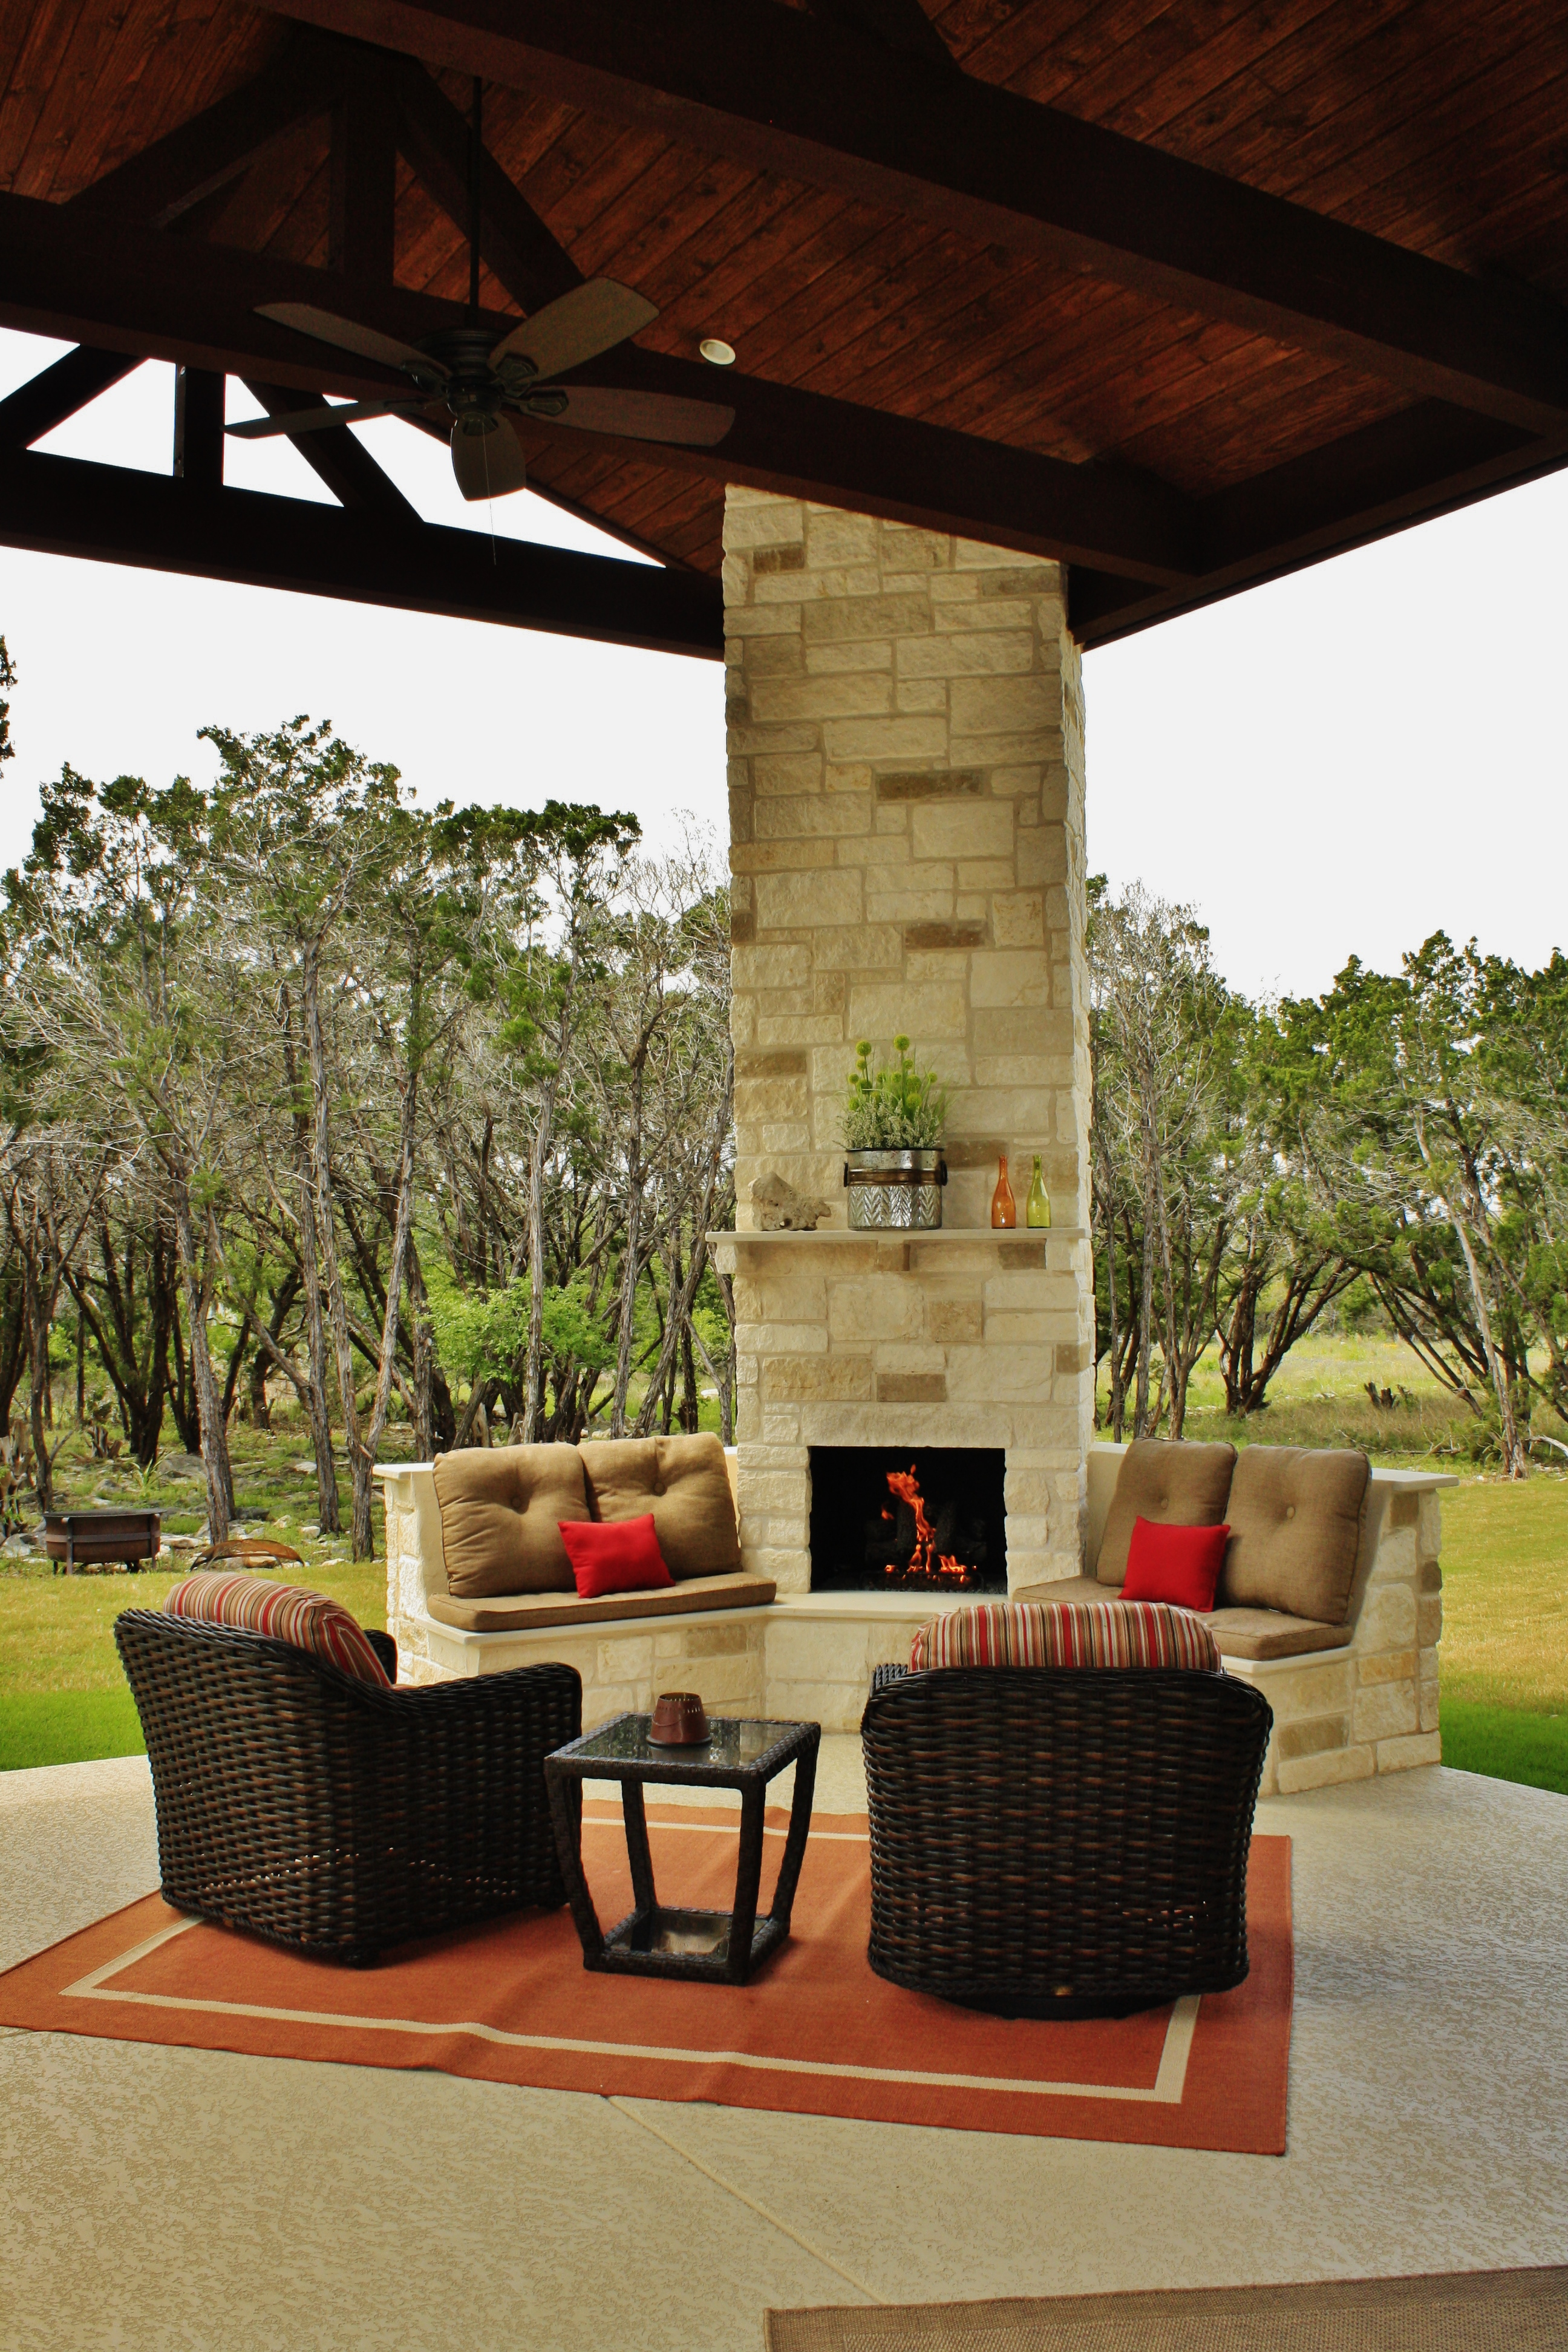 Gallery - Pacific Outdoor Living |Landscape Outdoor Kitchens